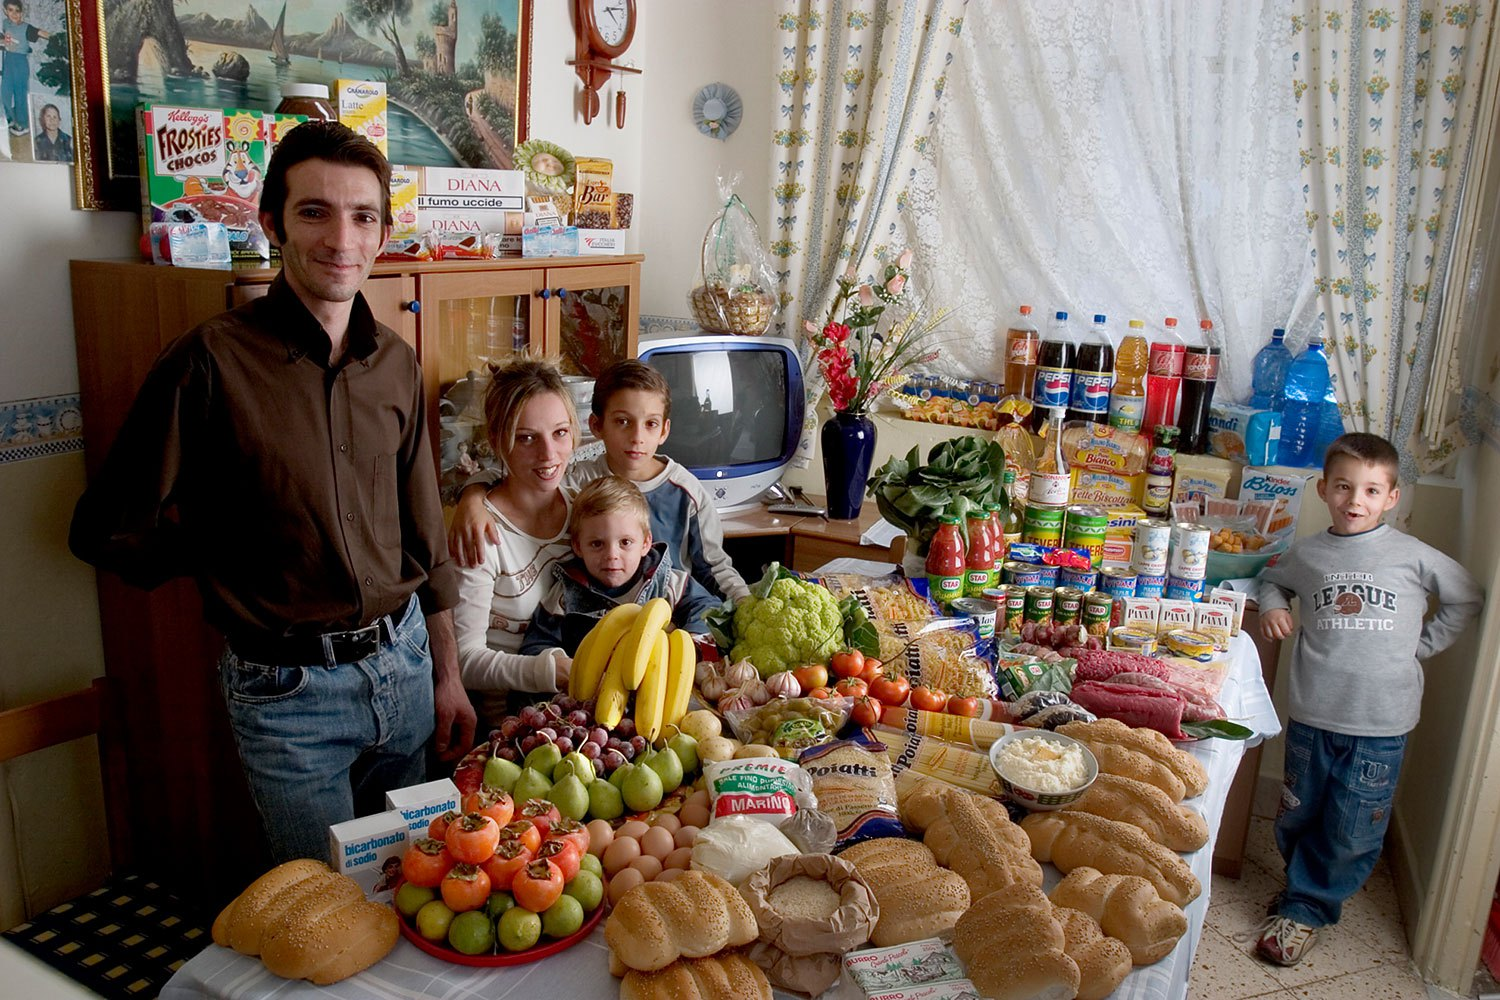 Italy: The Manzo family of Sicily.                                                              Food expenditure for one week: 214.36 Euros or $260.11.                               Favorite foods: fish, pasta with ragu, hot dogs, frozen fish sticks.